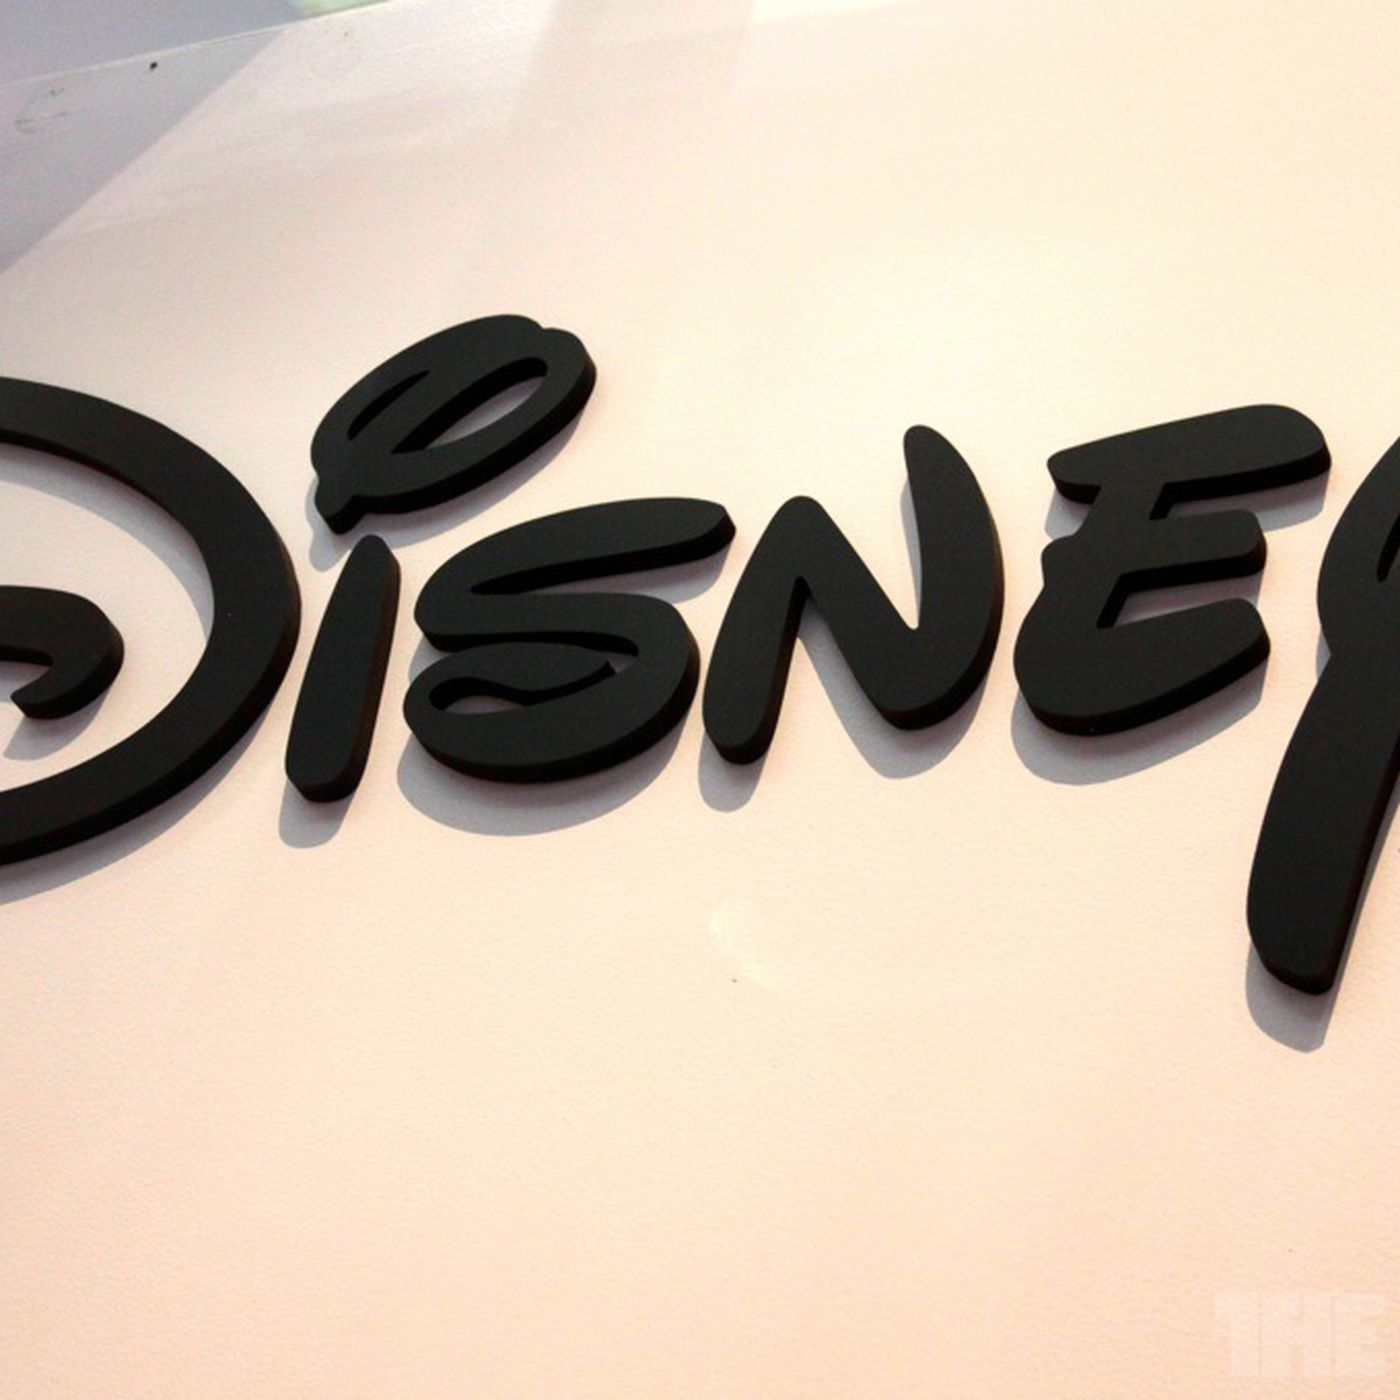 Disney\'s reported streaming service plans show the company is ...